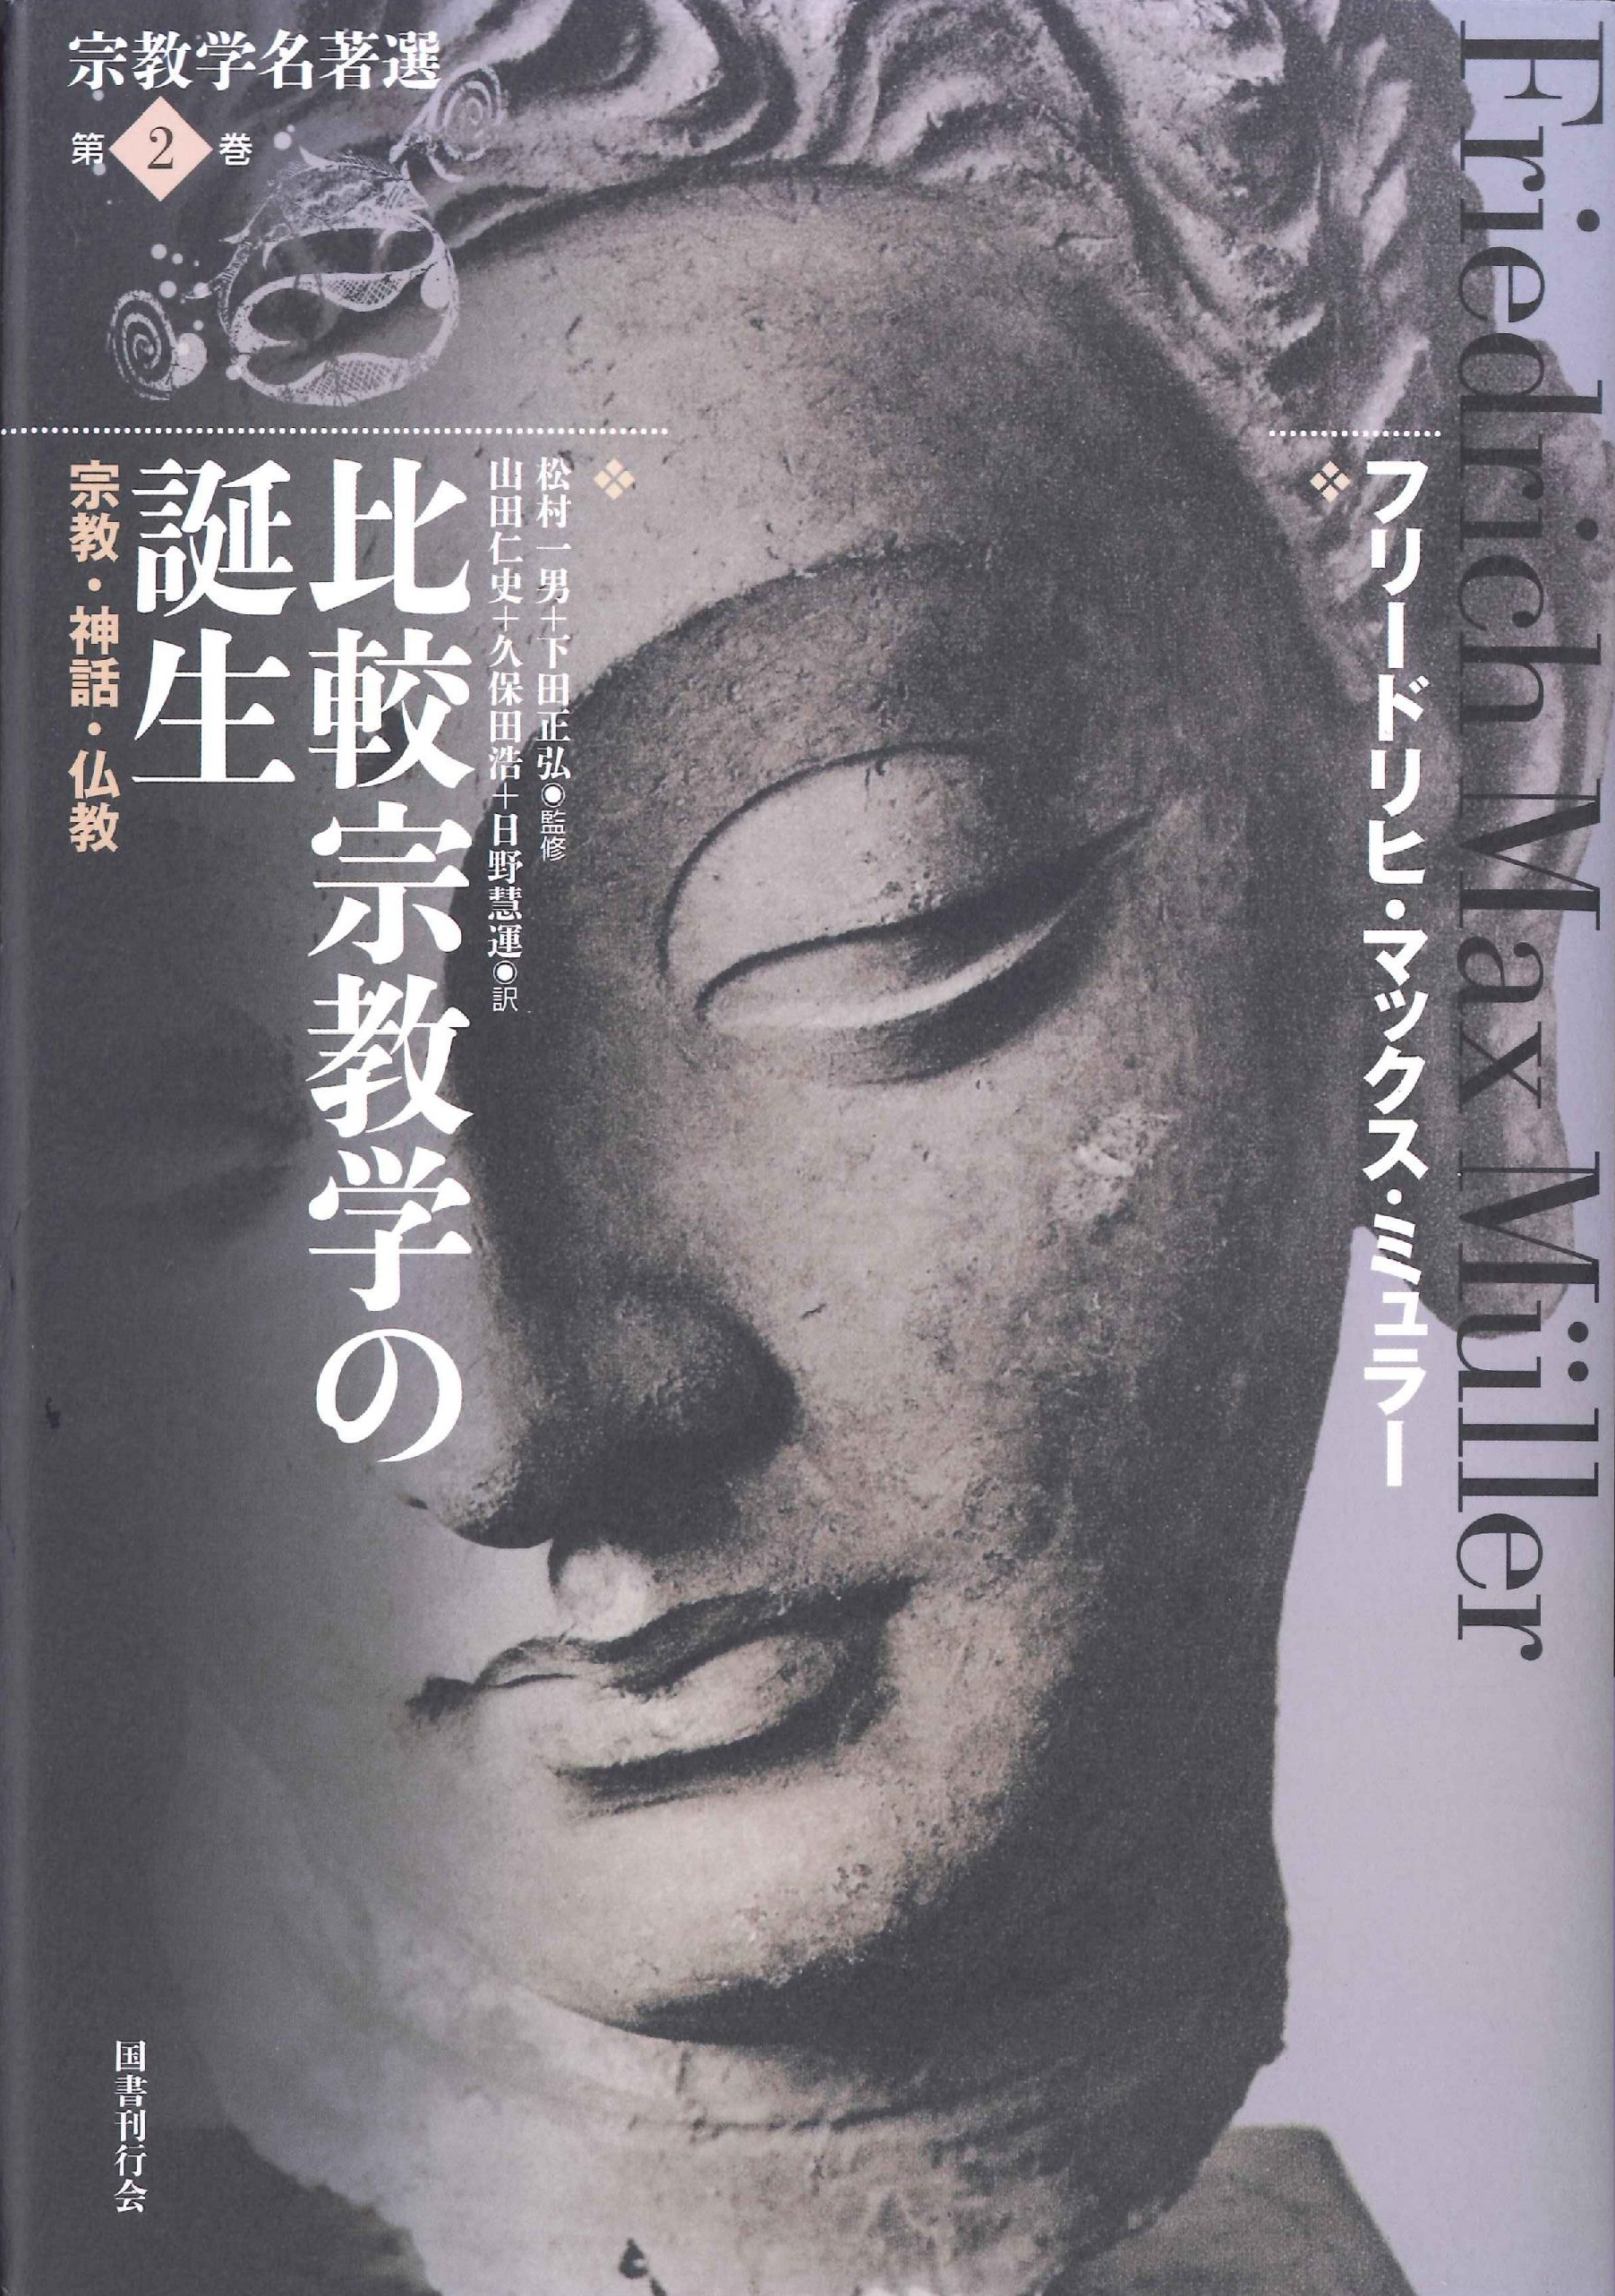 Book cover: photograph of the face of a Buddhist statue